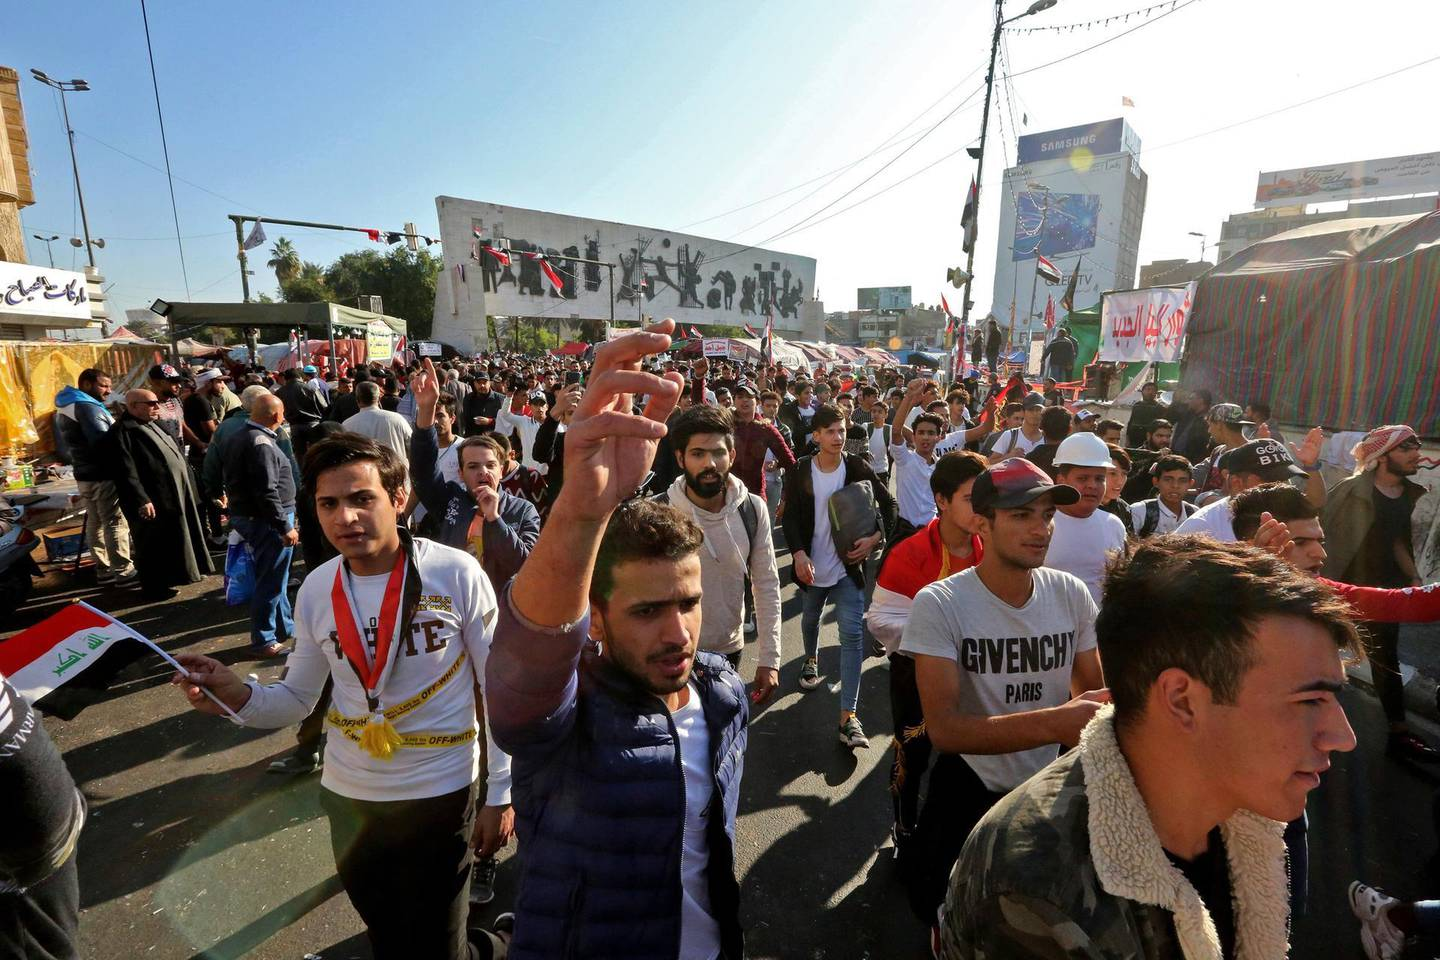 Iraqi anti-government protesters are pictured at Tahrir square on November 19, 2019. Protests erupted in early October in fury over corruption, a lack of jobs and an out-of-touch political class. / AFP / SABAH ARAR